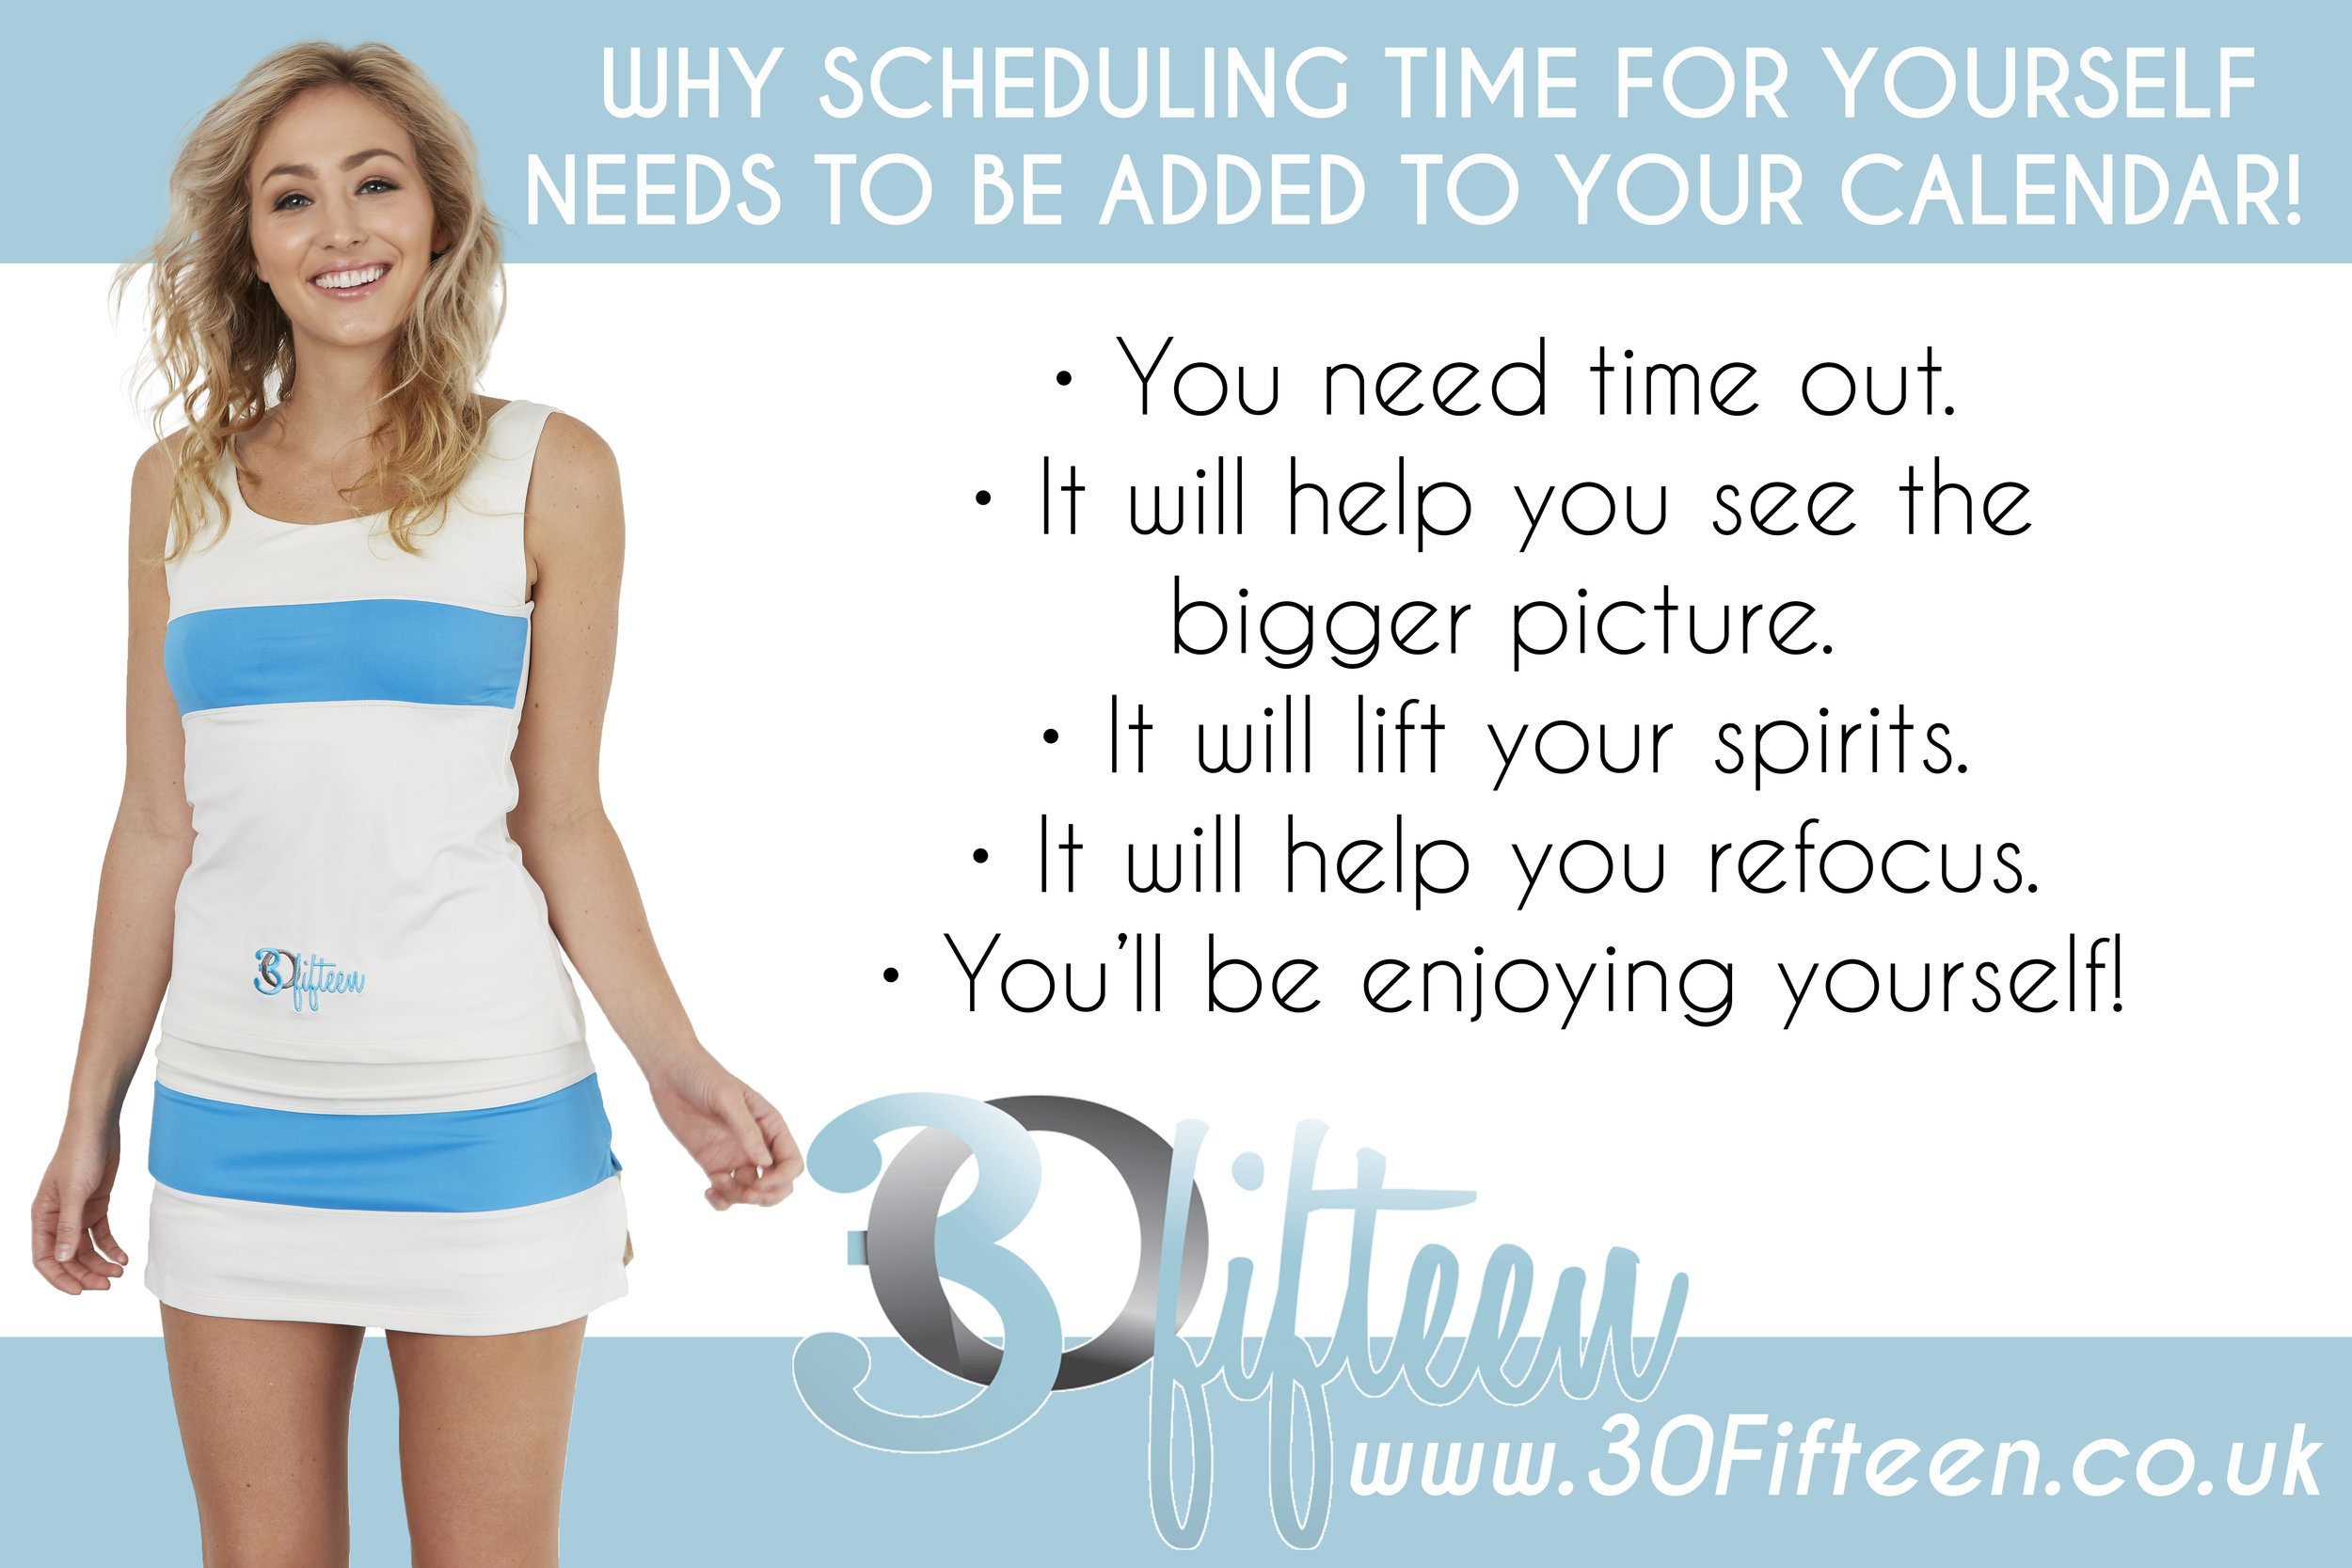 30Fifteen scheduling time for yourself needs to be a priority